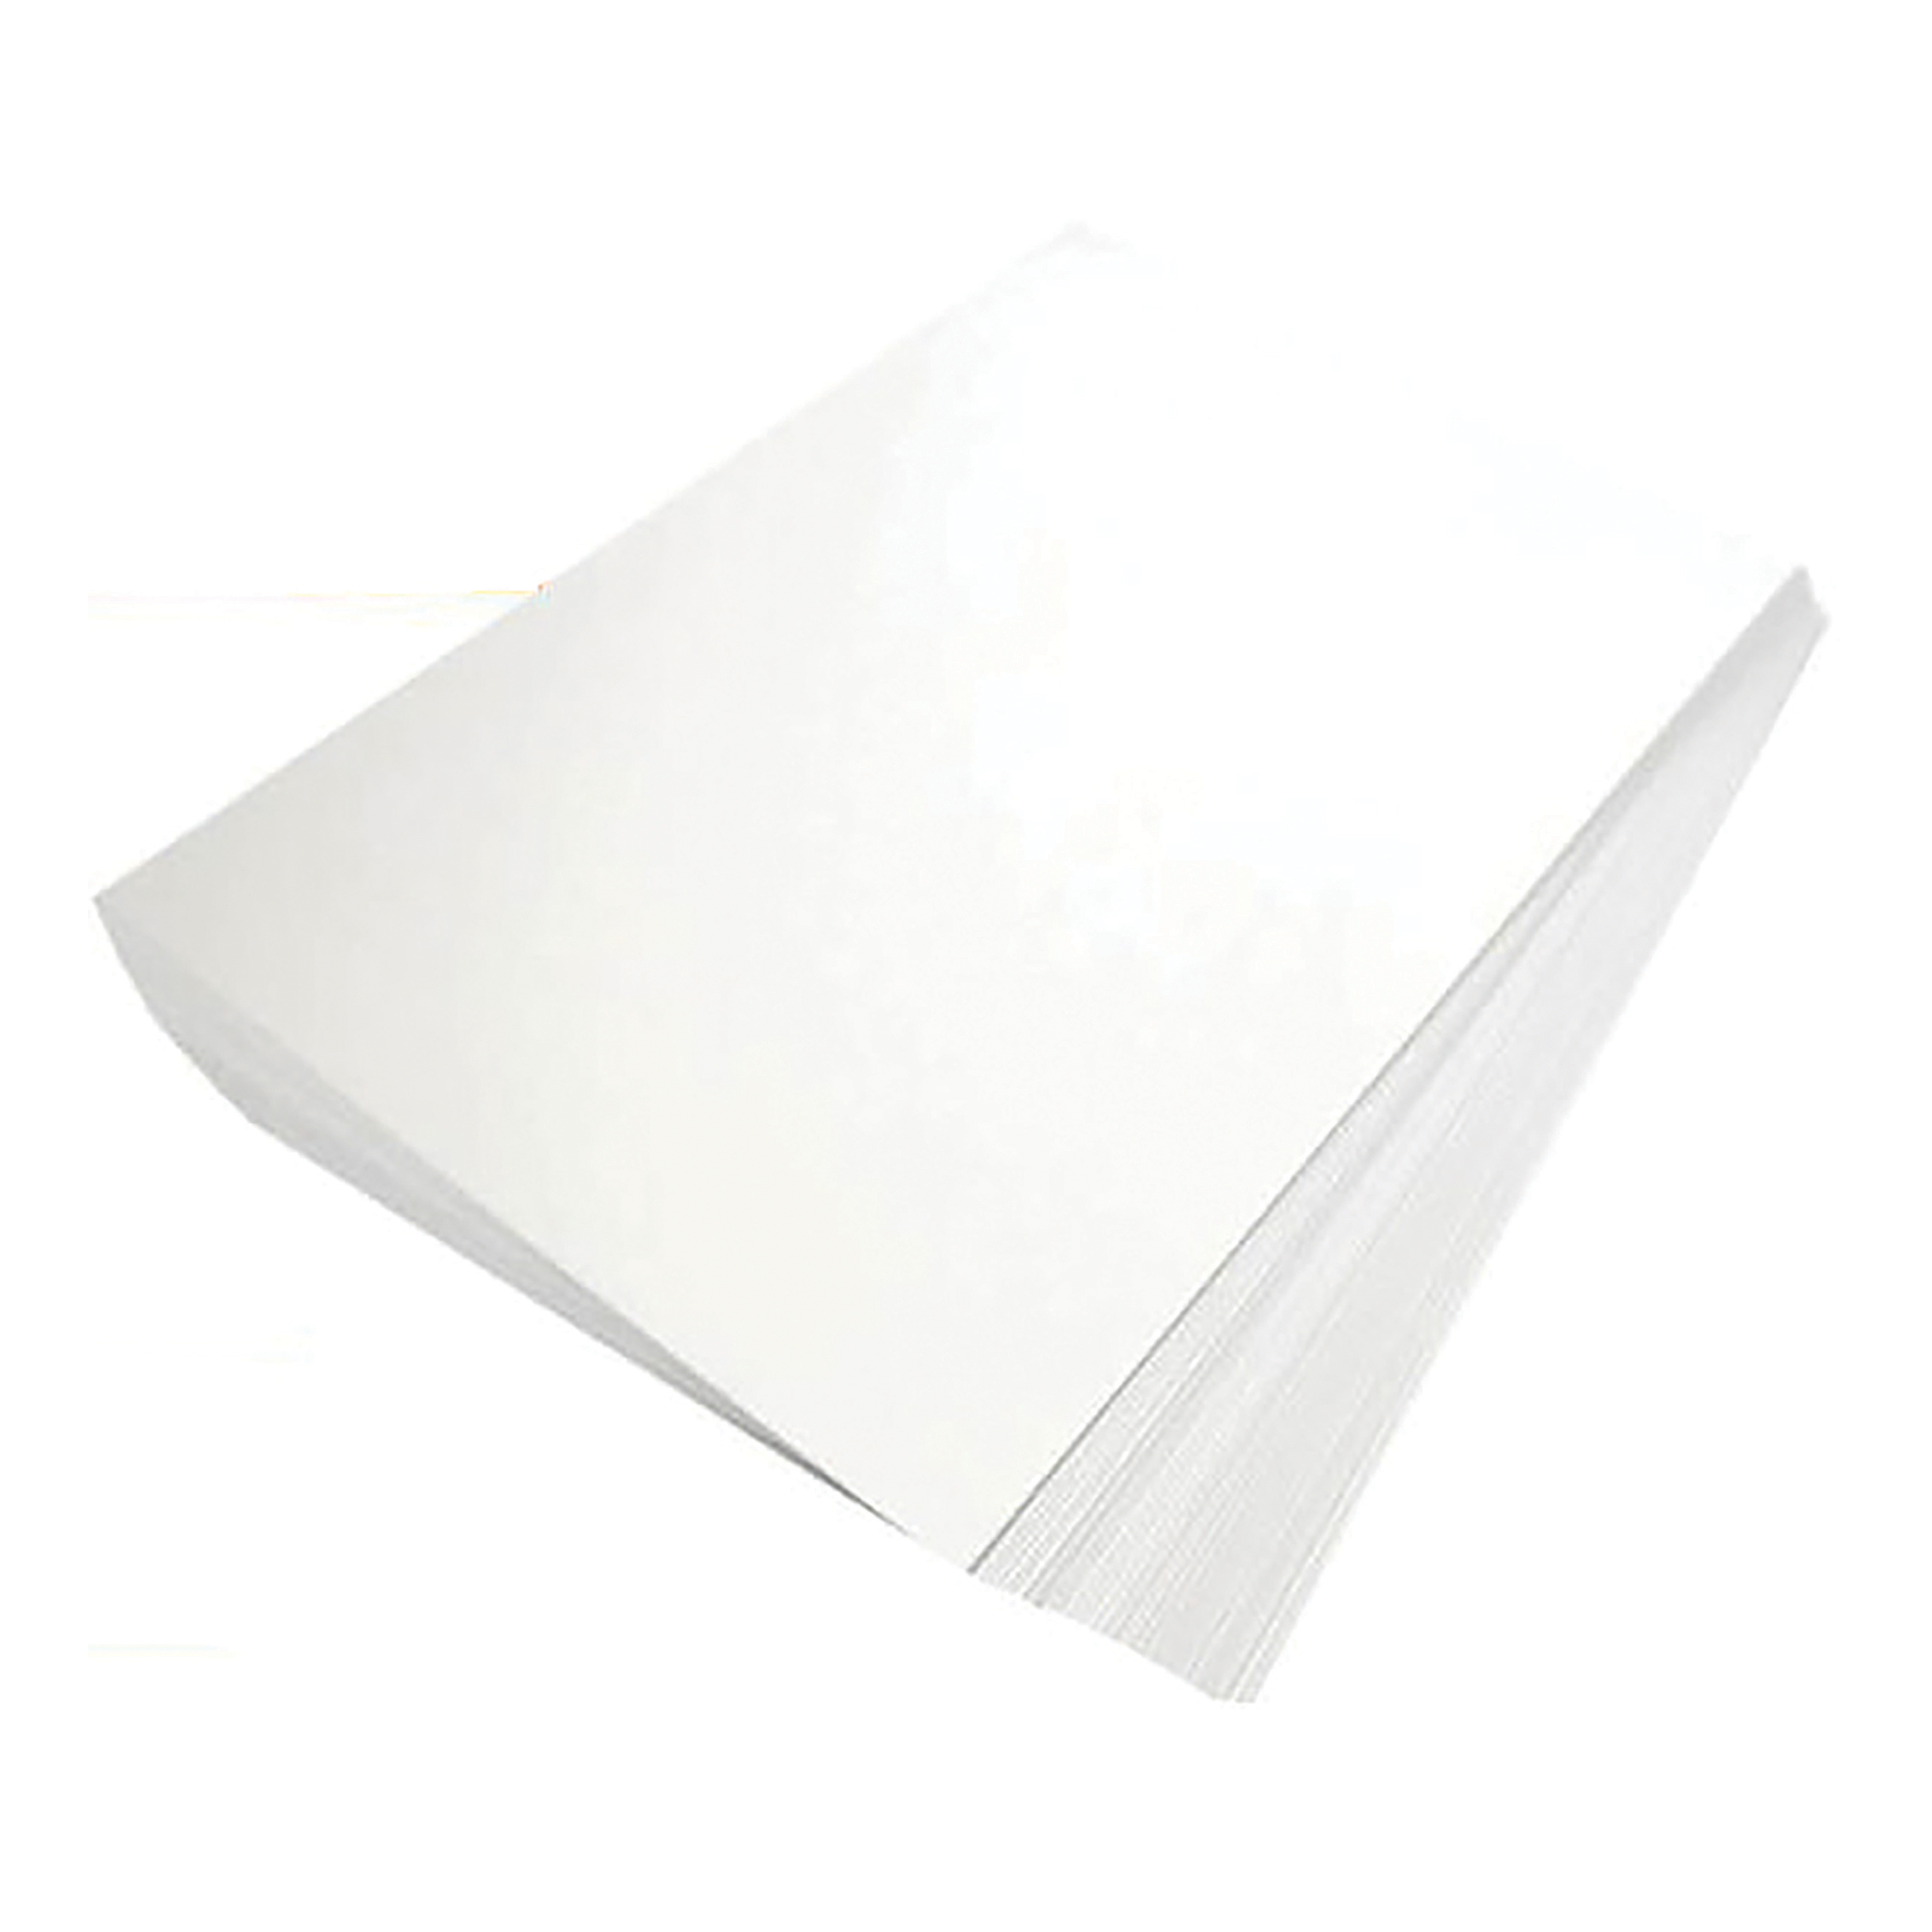 Image for 5 Star Elite Premium Business Paper Wove Finish Ream-Wrapped 100gsm A4 Vellum [500 Sheets]